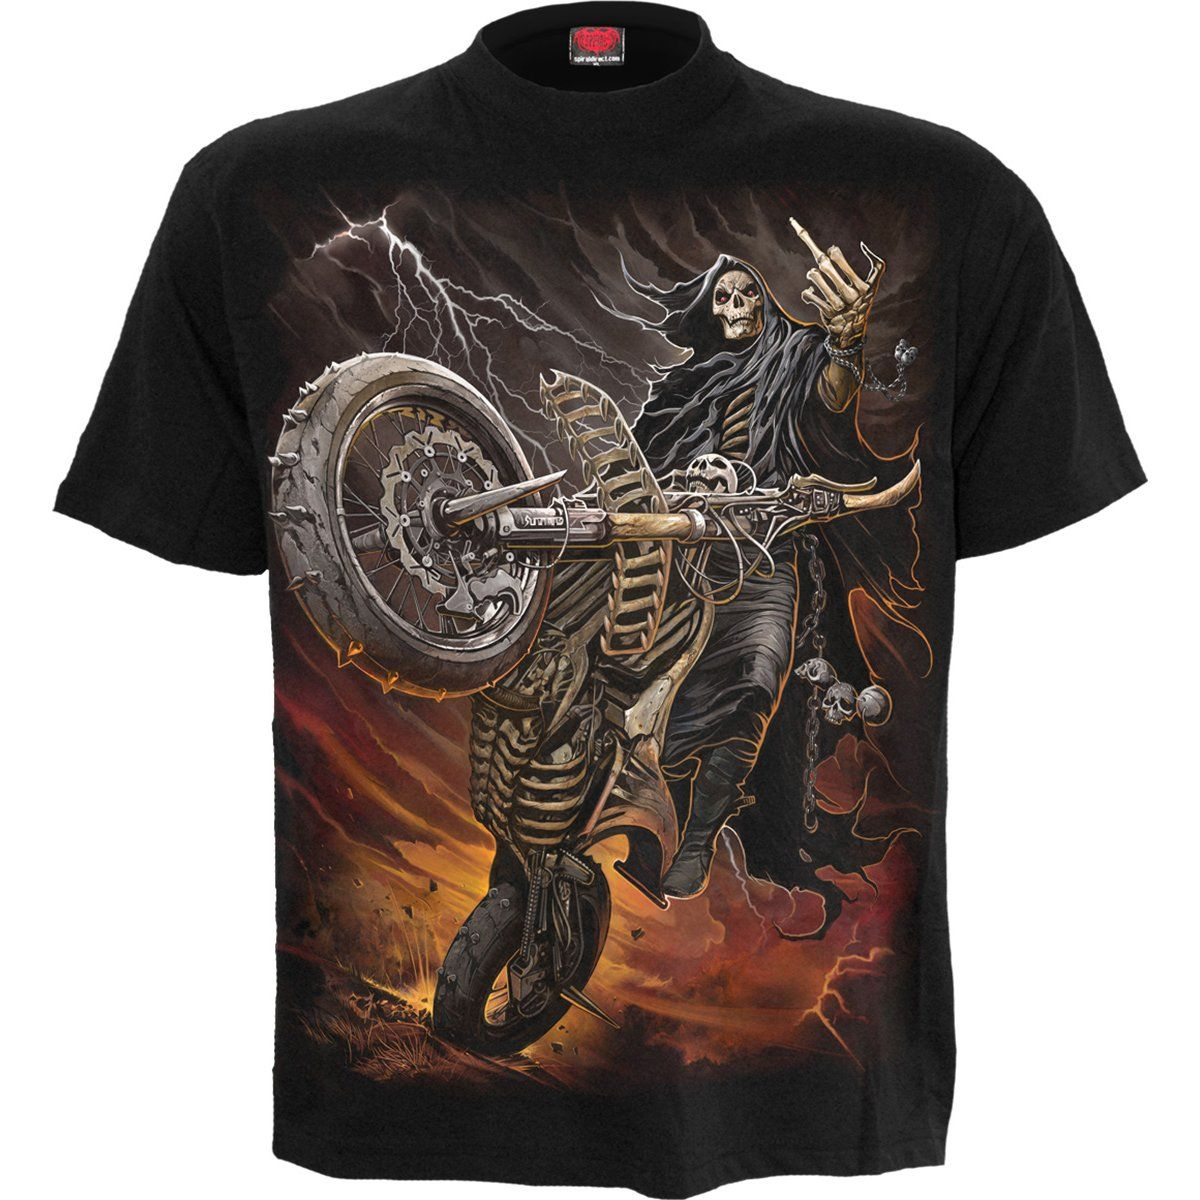 Grim Reaper Biker Men's Black T-Shirt